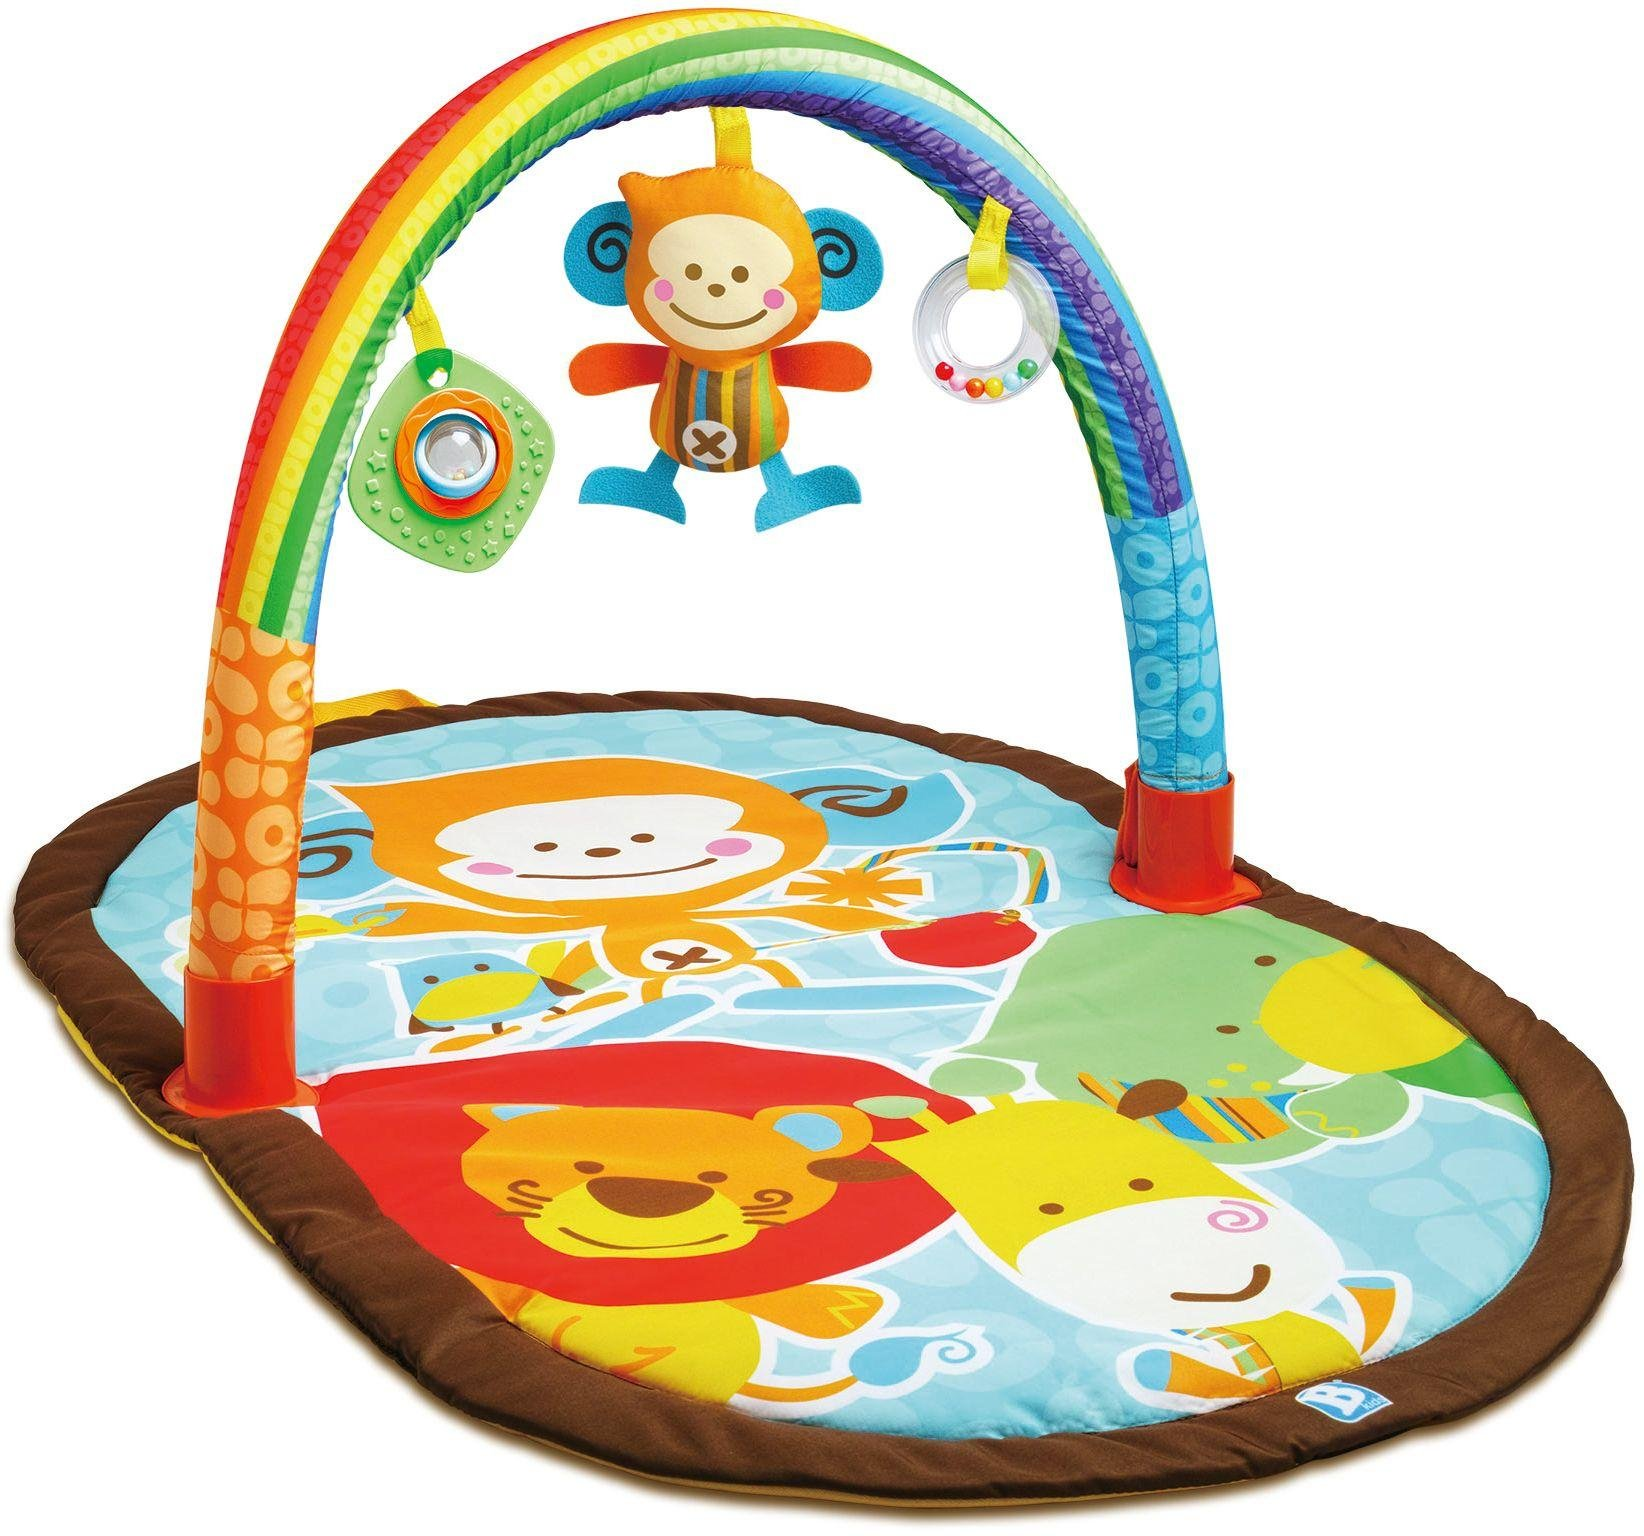 Image of Bkids Travel Discovery Gym.